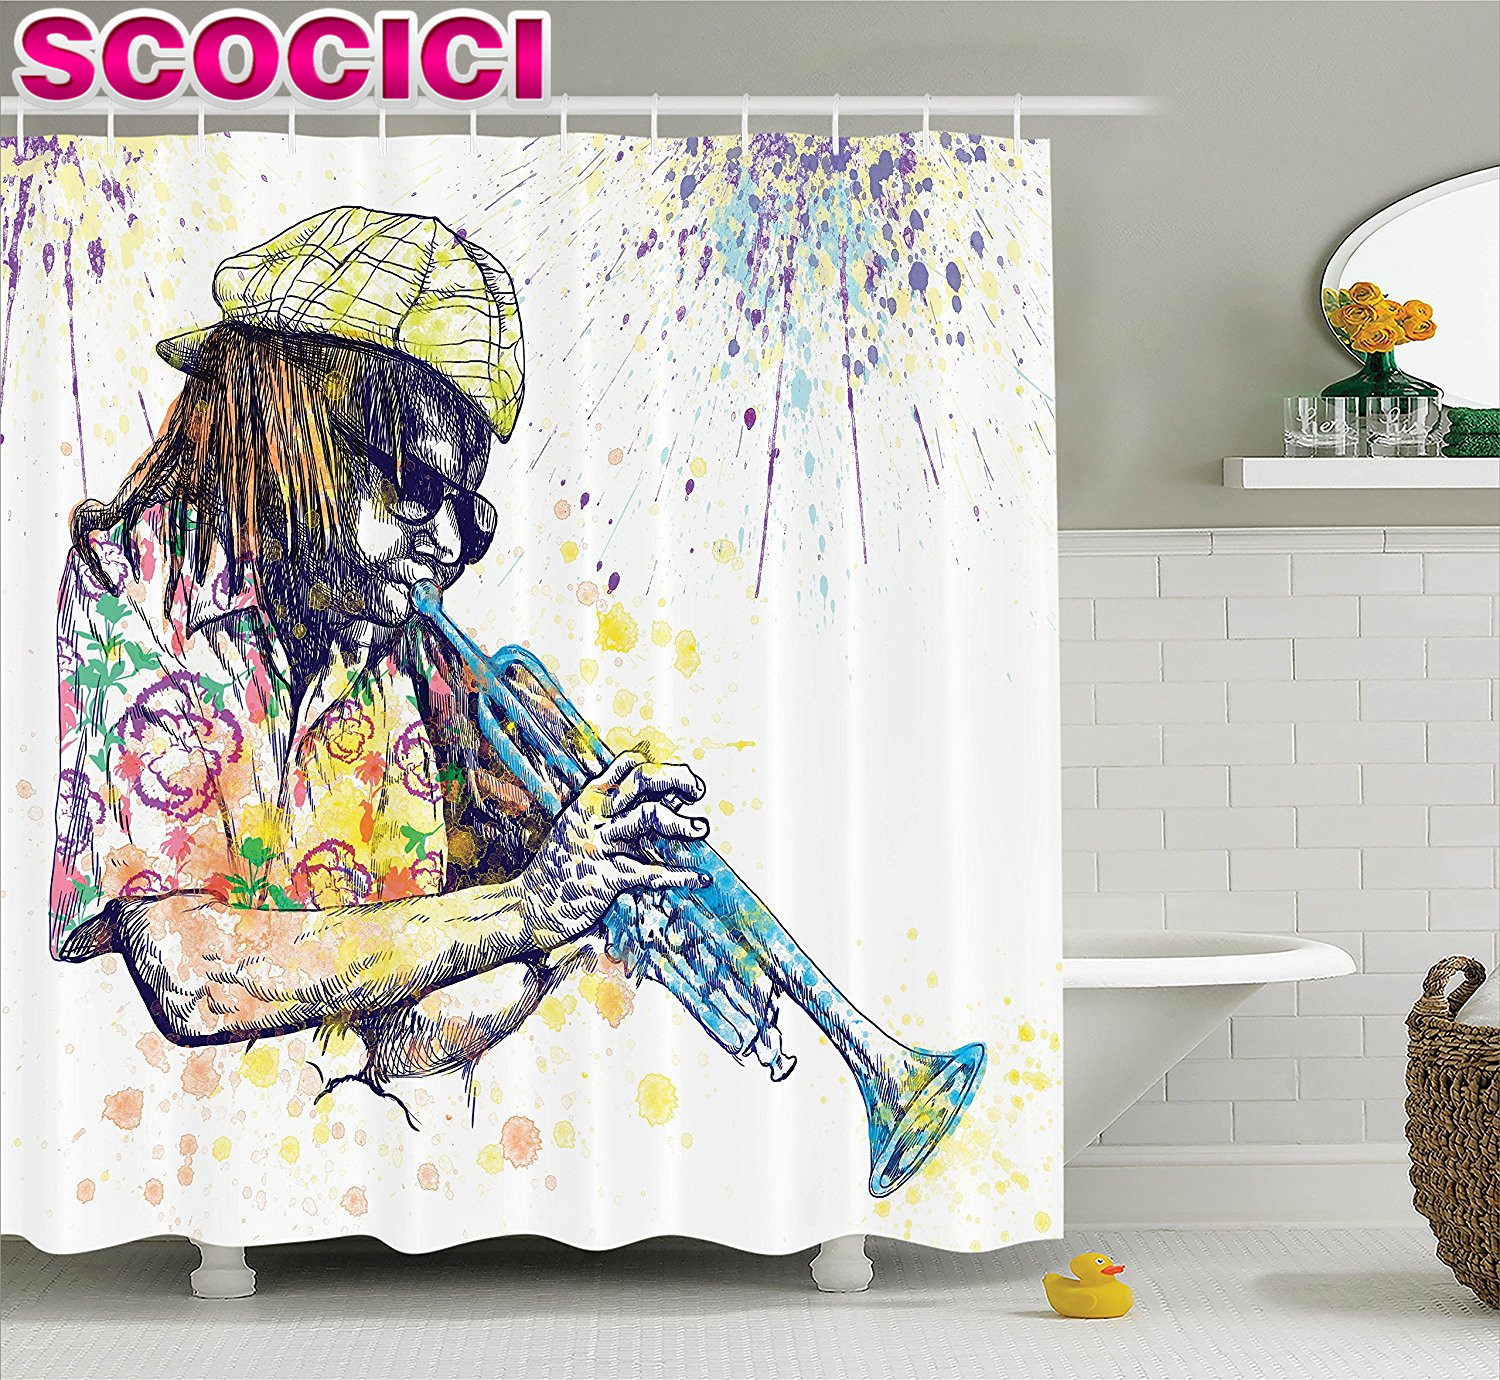 Generous Jazz Shower Curtain Pictures Inspiration - Bathtub for ...